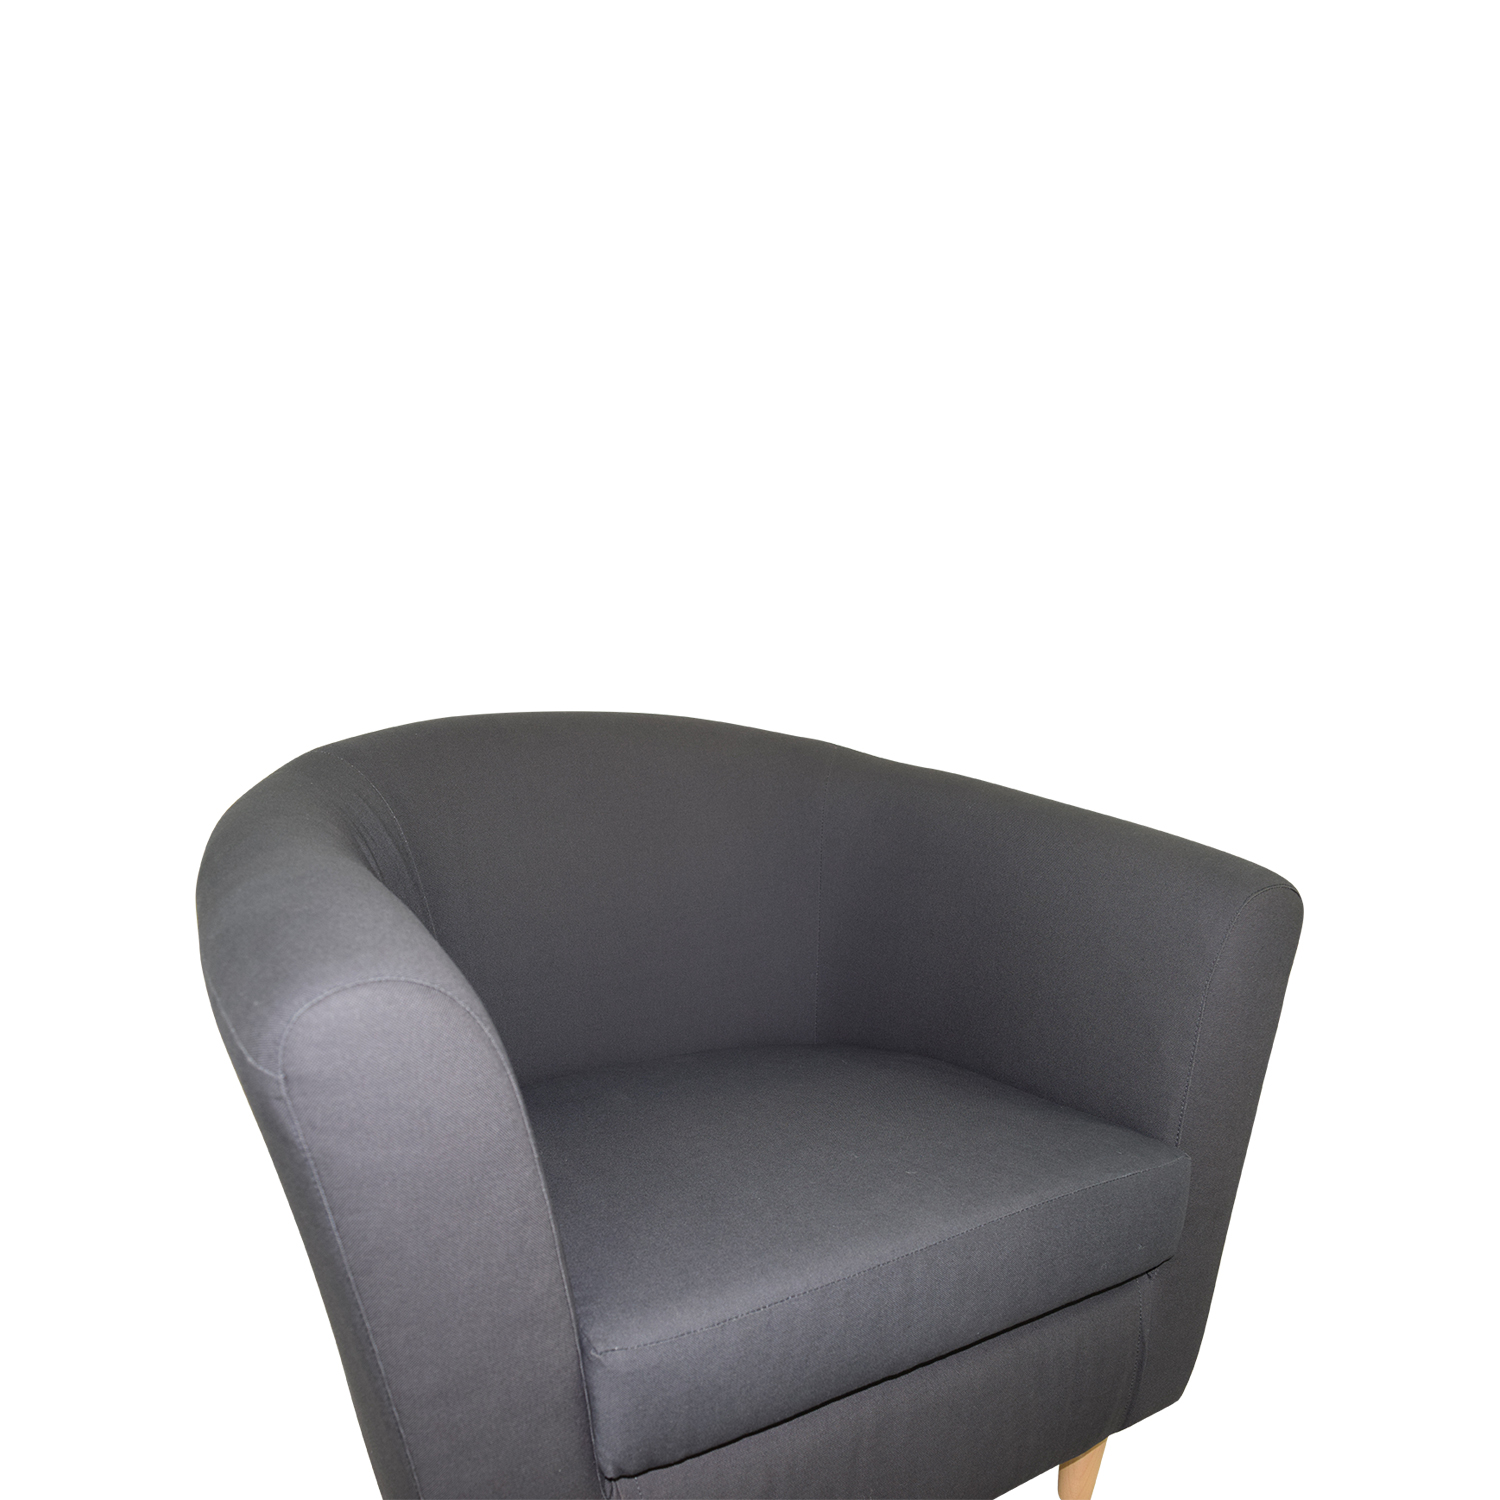 64% OFF - IKEA IKEA Tullsta Blue Armchair / Chairs